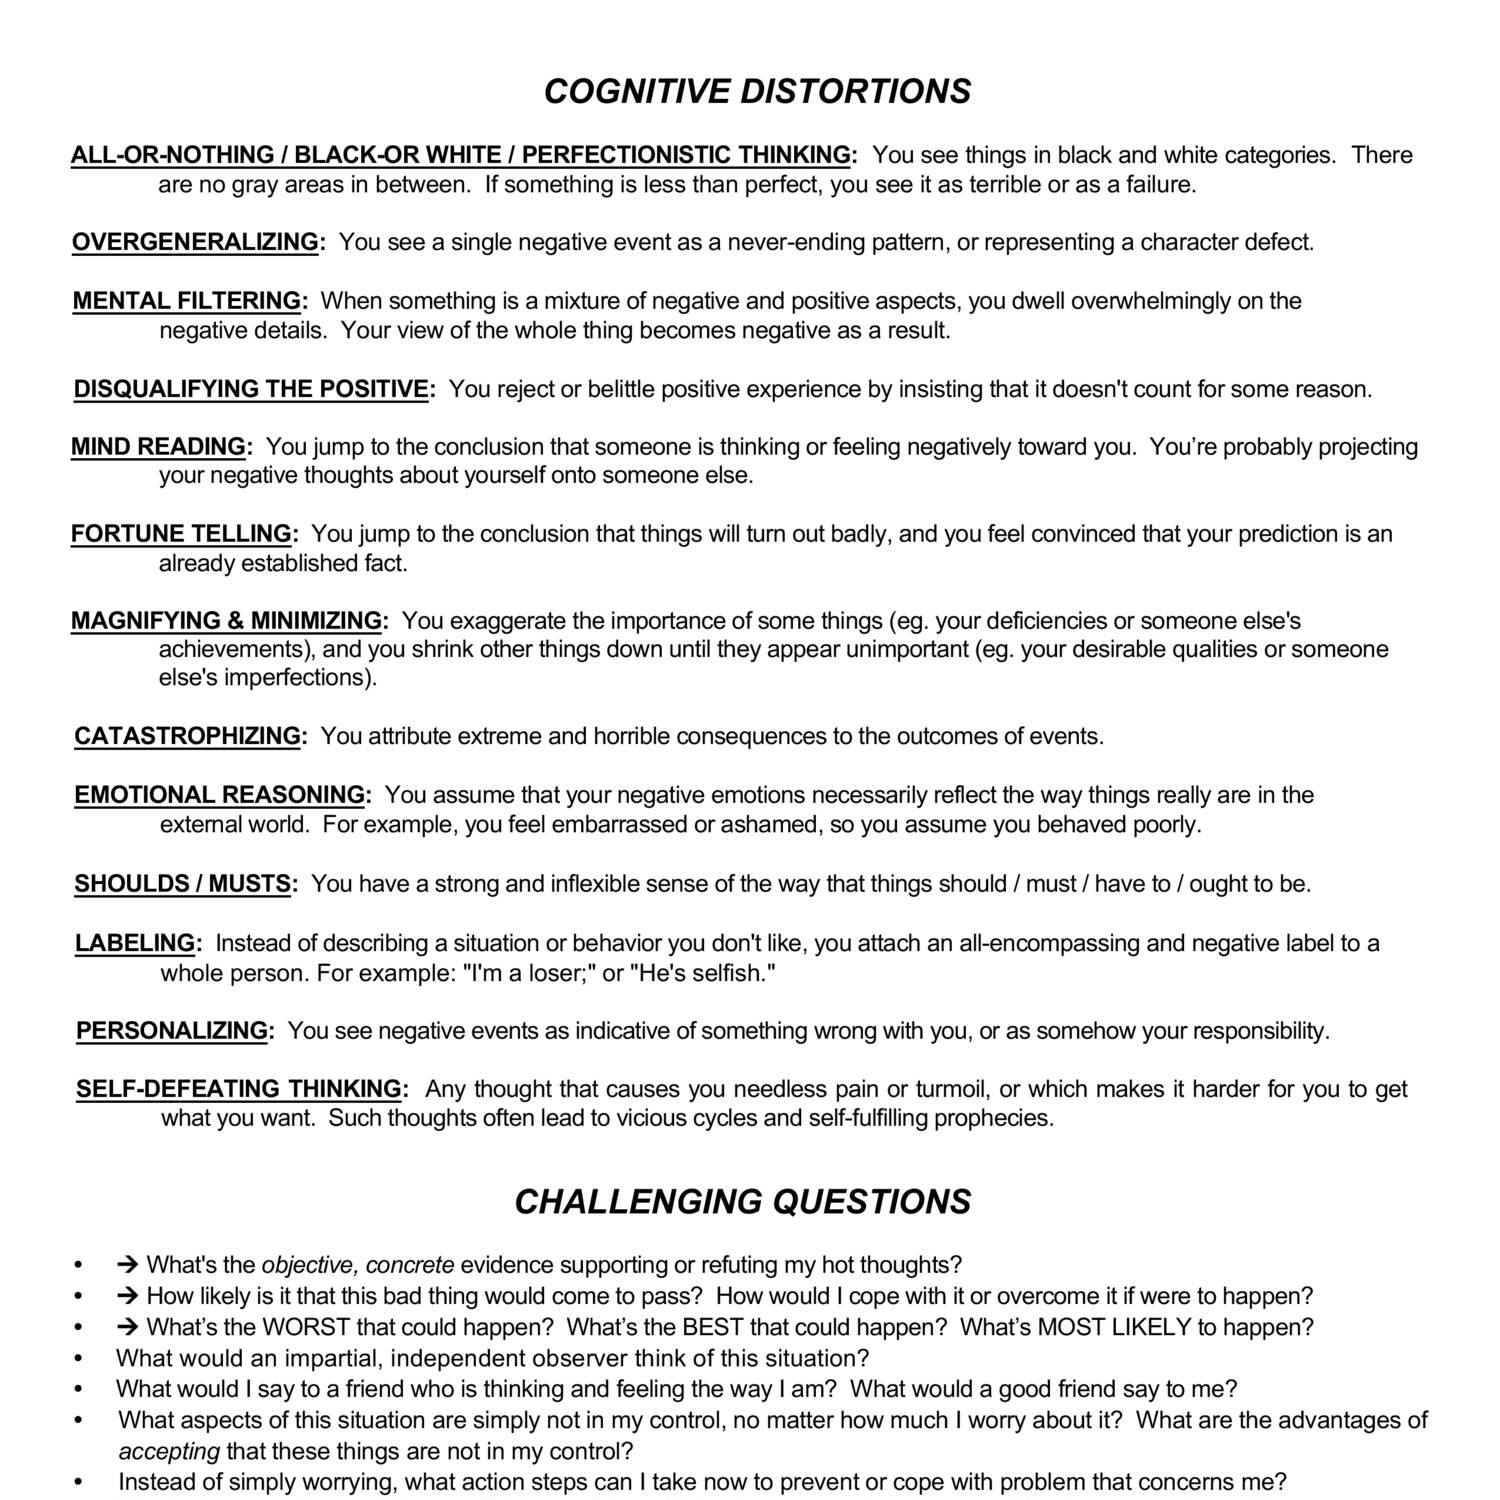 Worksheets Cognitive Restructuring Worksheet cognitive restructuring worksheets pdf docdroid